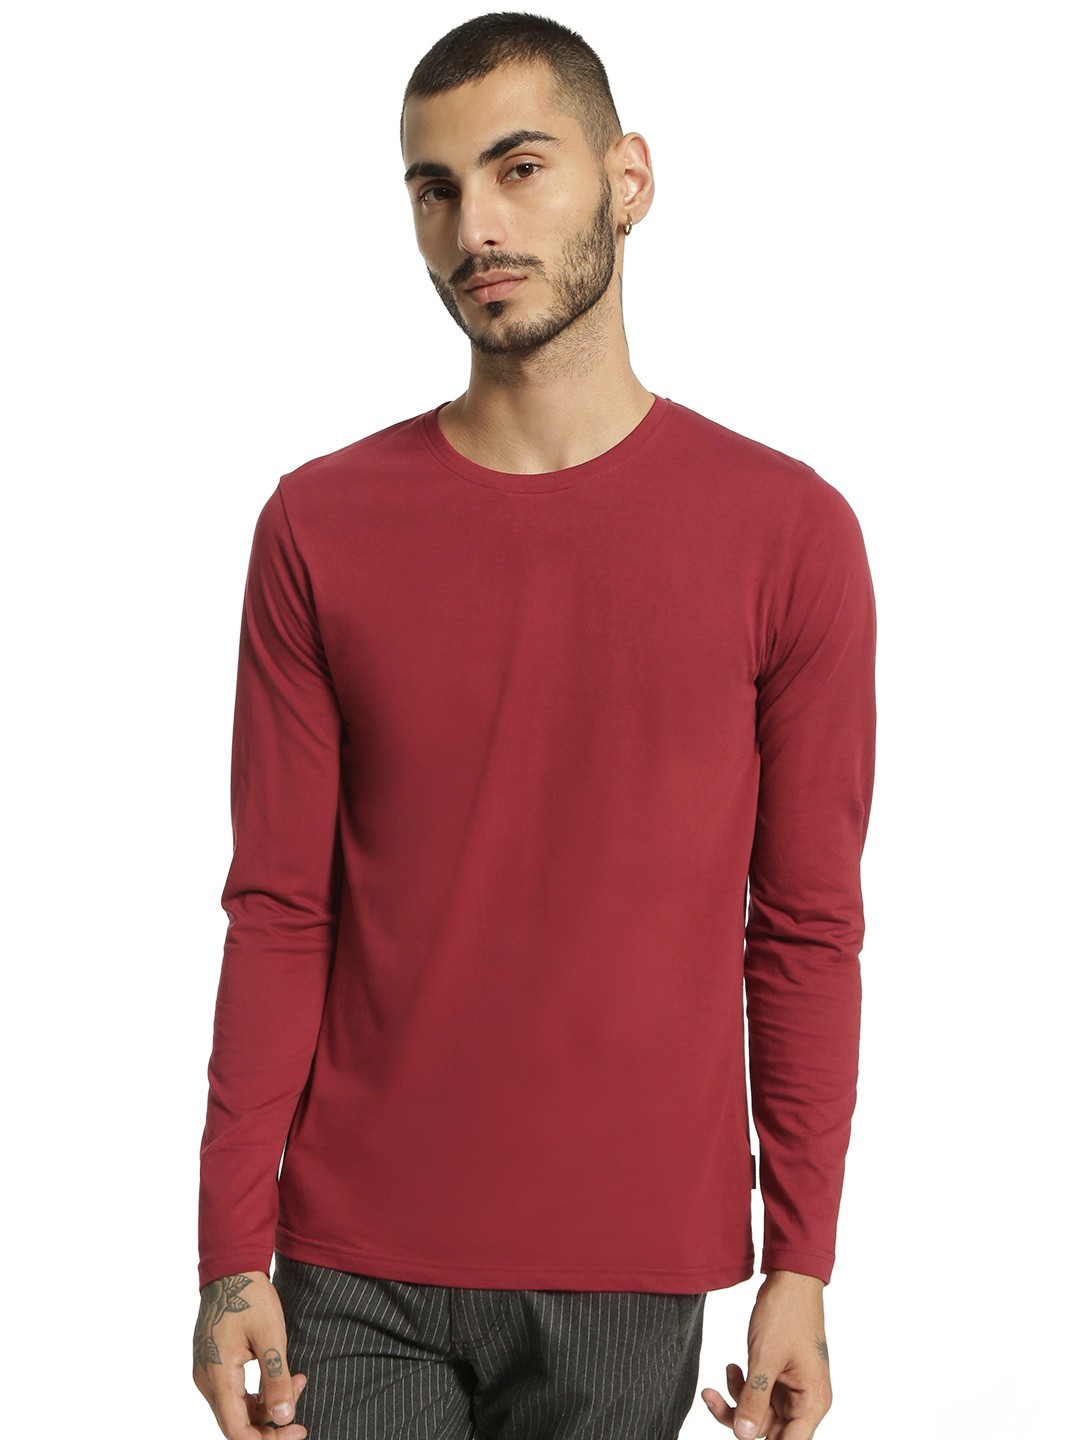 Blue Saint Maroon Basic Long Sleeve T-Shirt 1